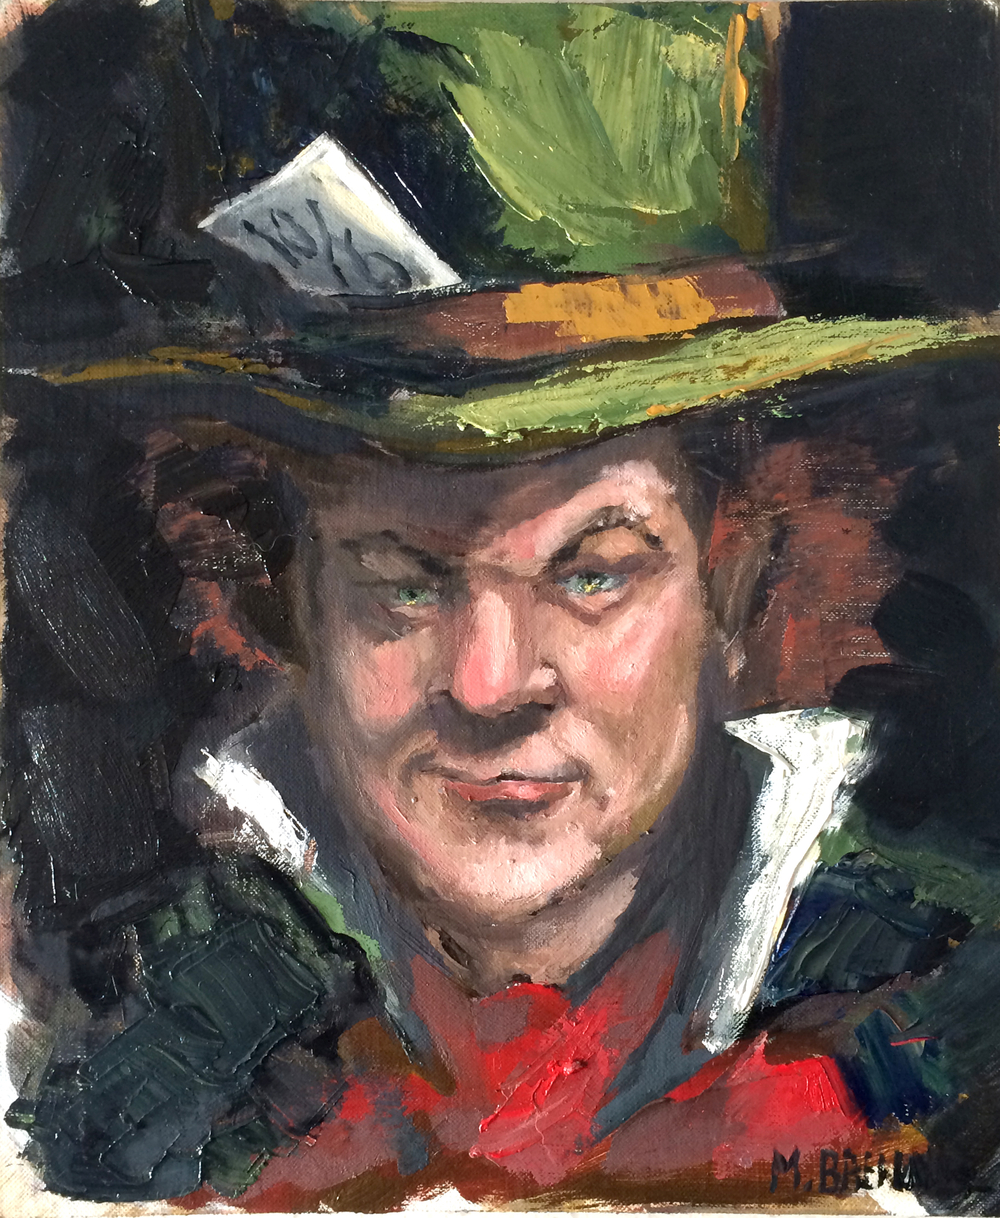 John C Reilly as Mad Hatter